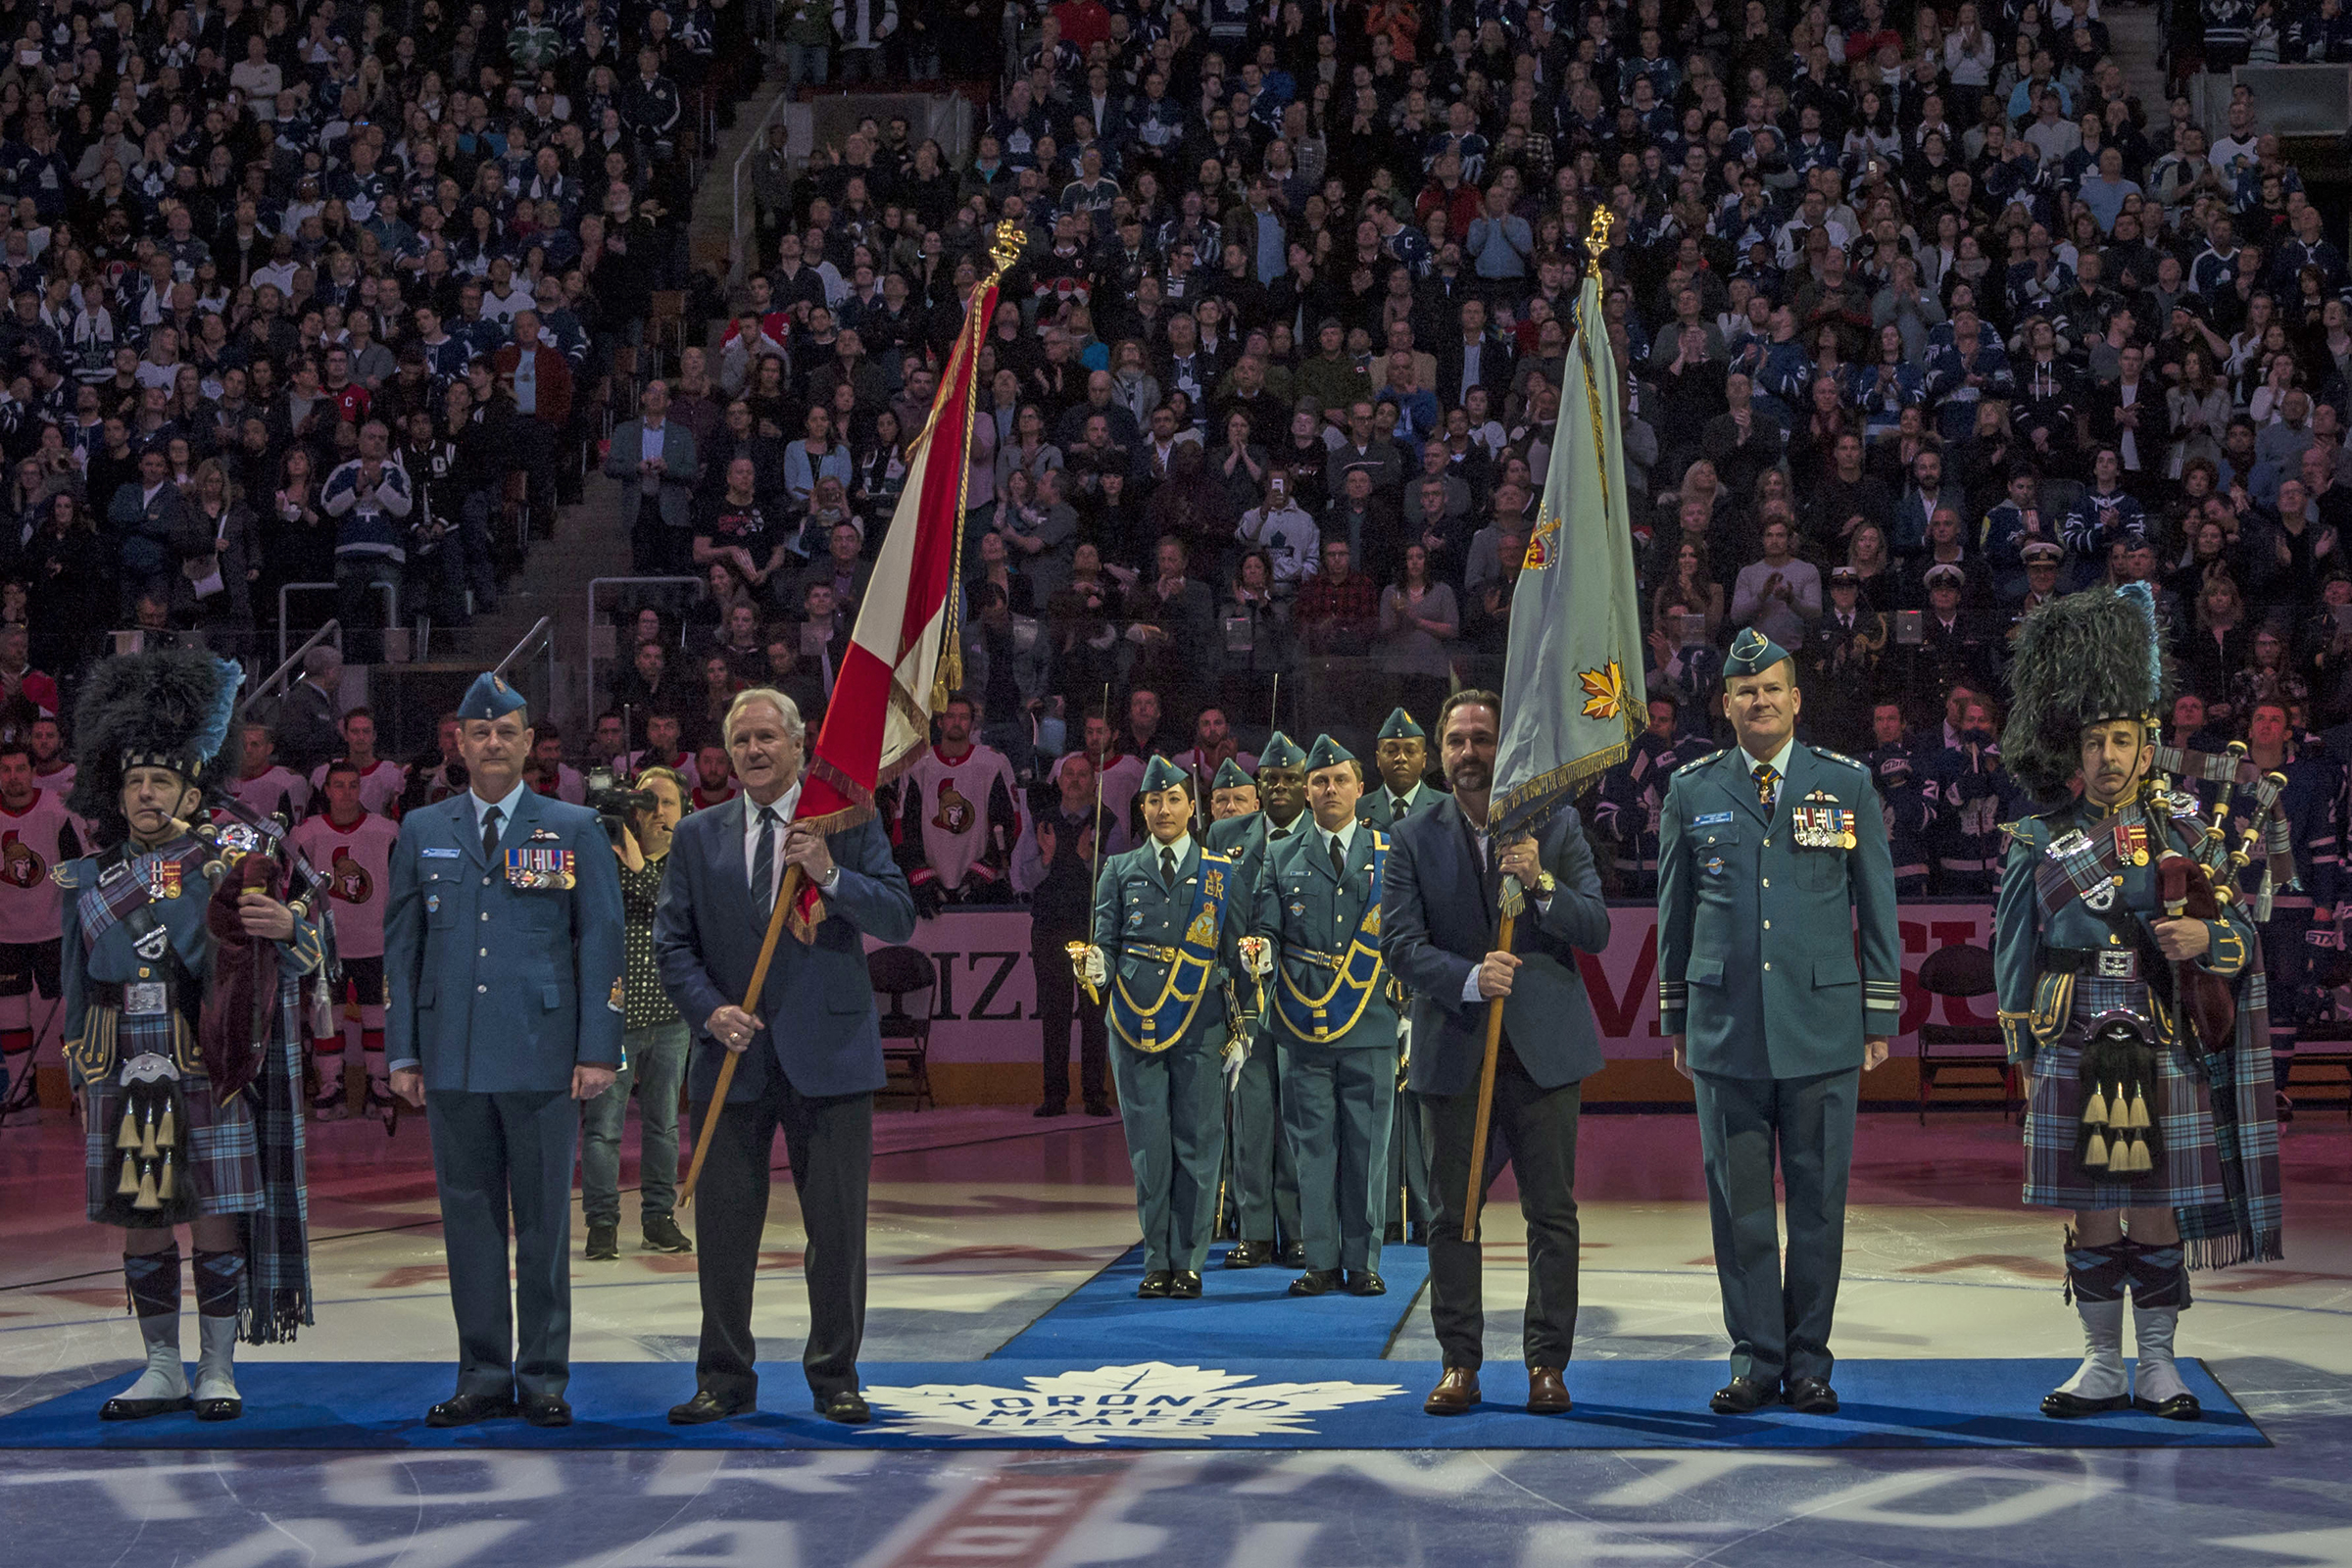 Four people in military uniforms and two in civilian clothing, each holding a large flag on a pole, stand on the surface of a hockey arena with a large crowd behind them.